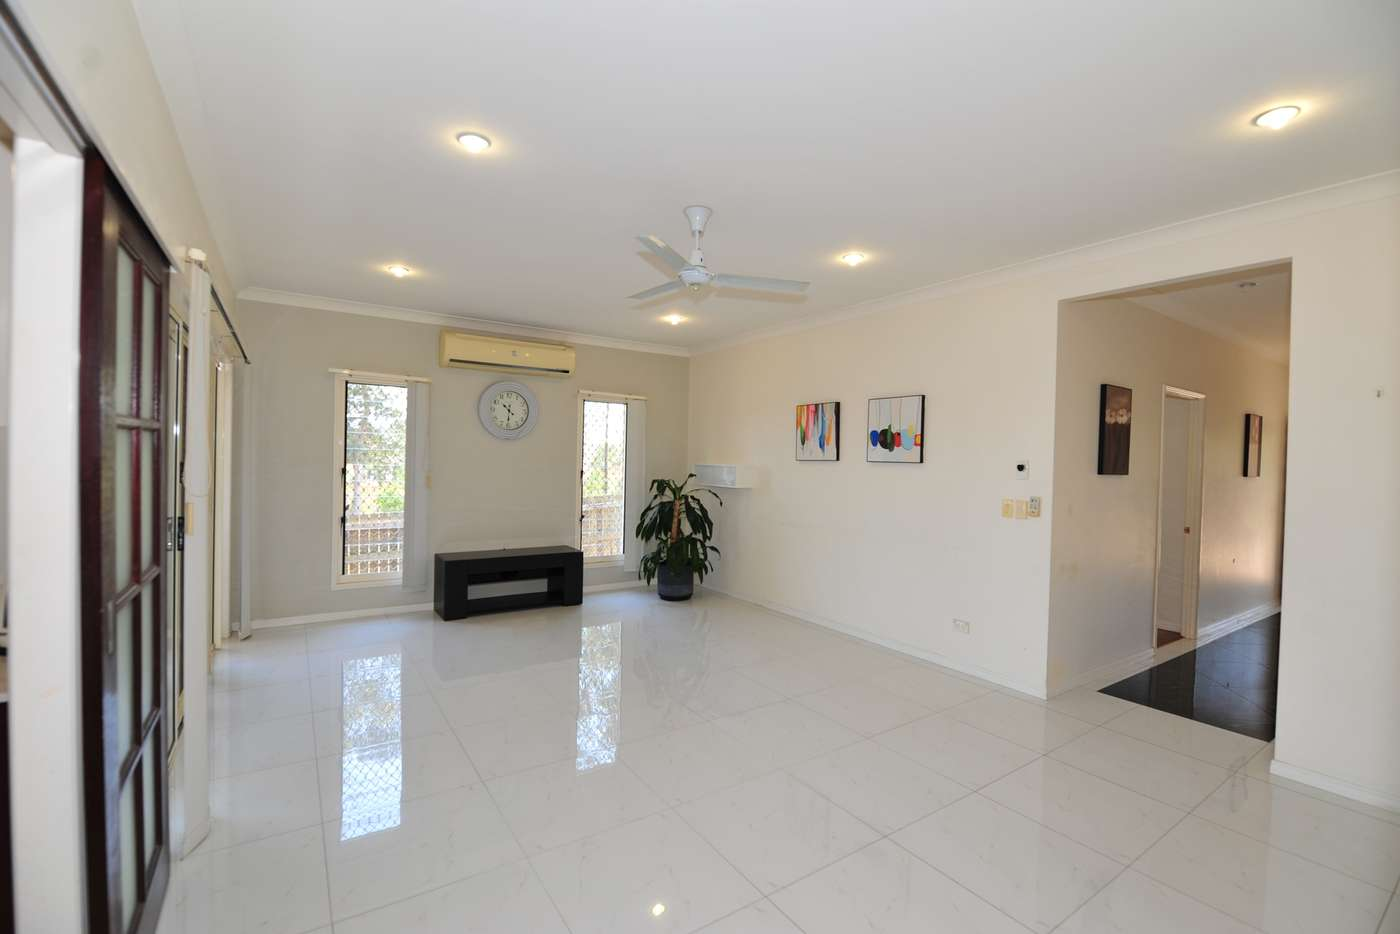 Fifth view of Homely house listing, 18 Sakarben Street, Eight Mile Plains QLD 4113